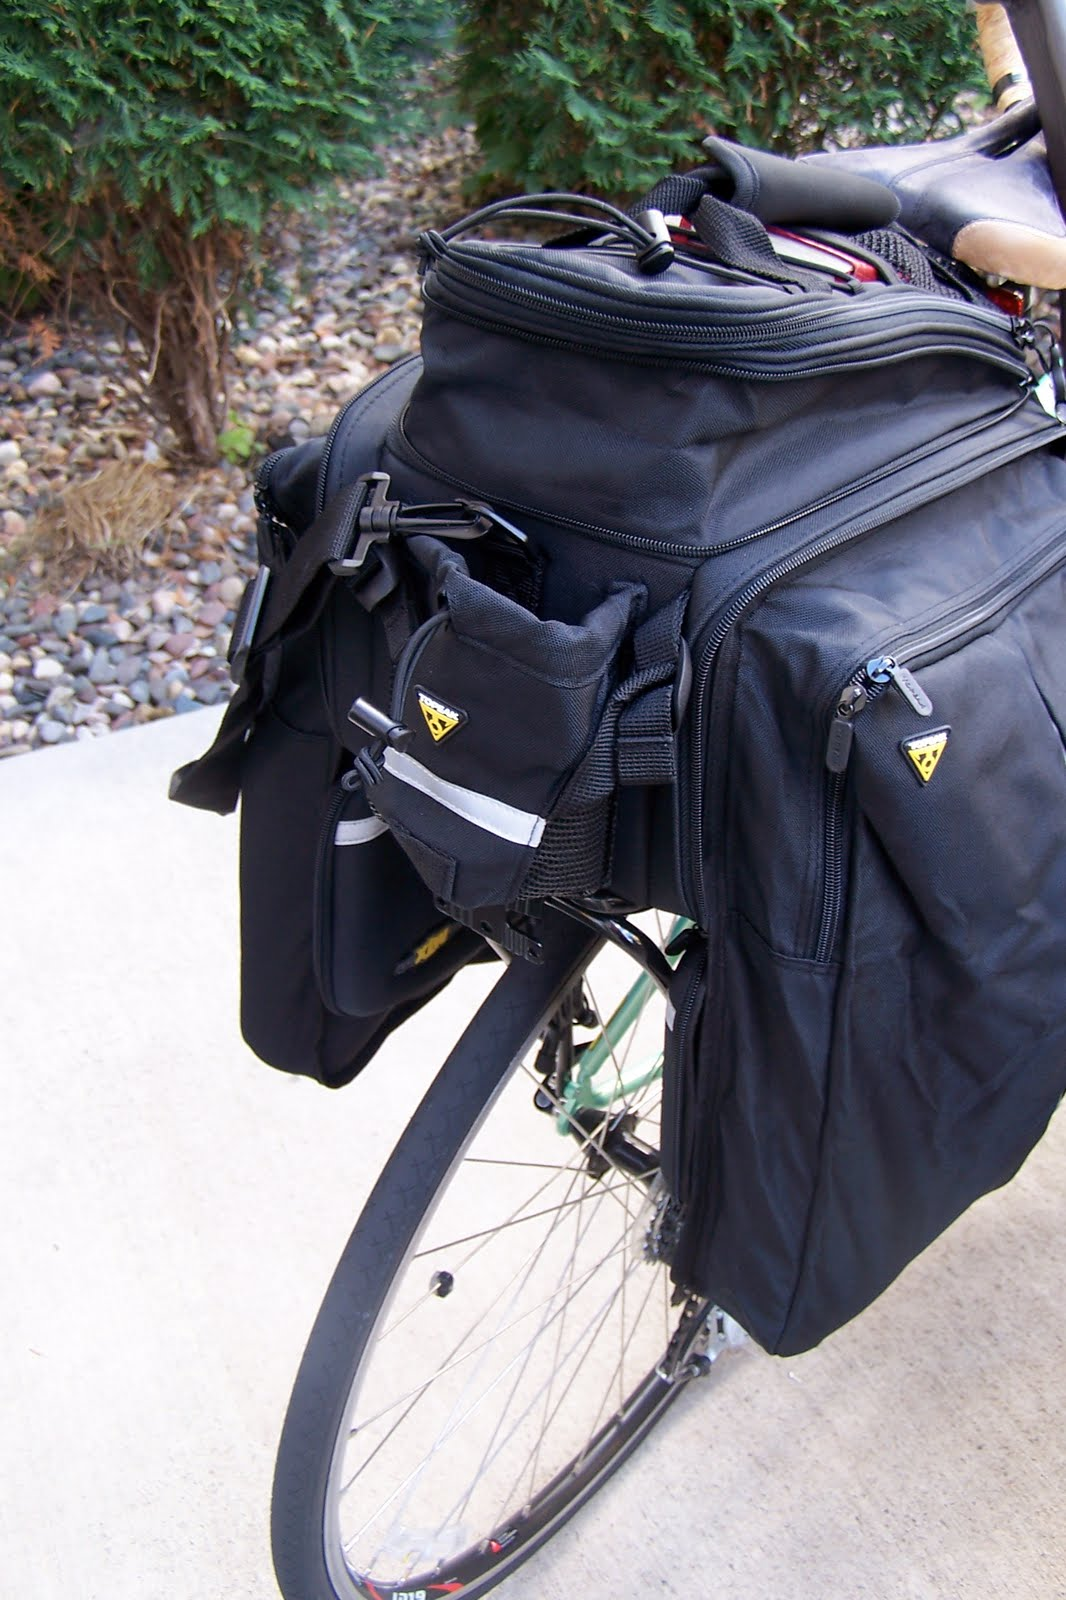 Steady State Condition Review Topeak Mtx Trunk Bag And Explorer Rack